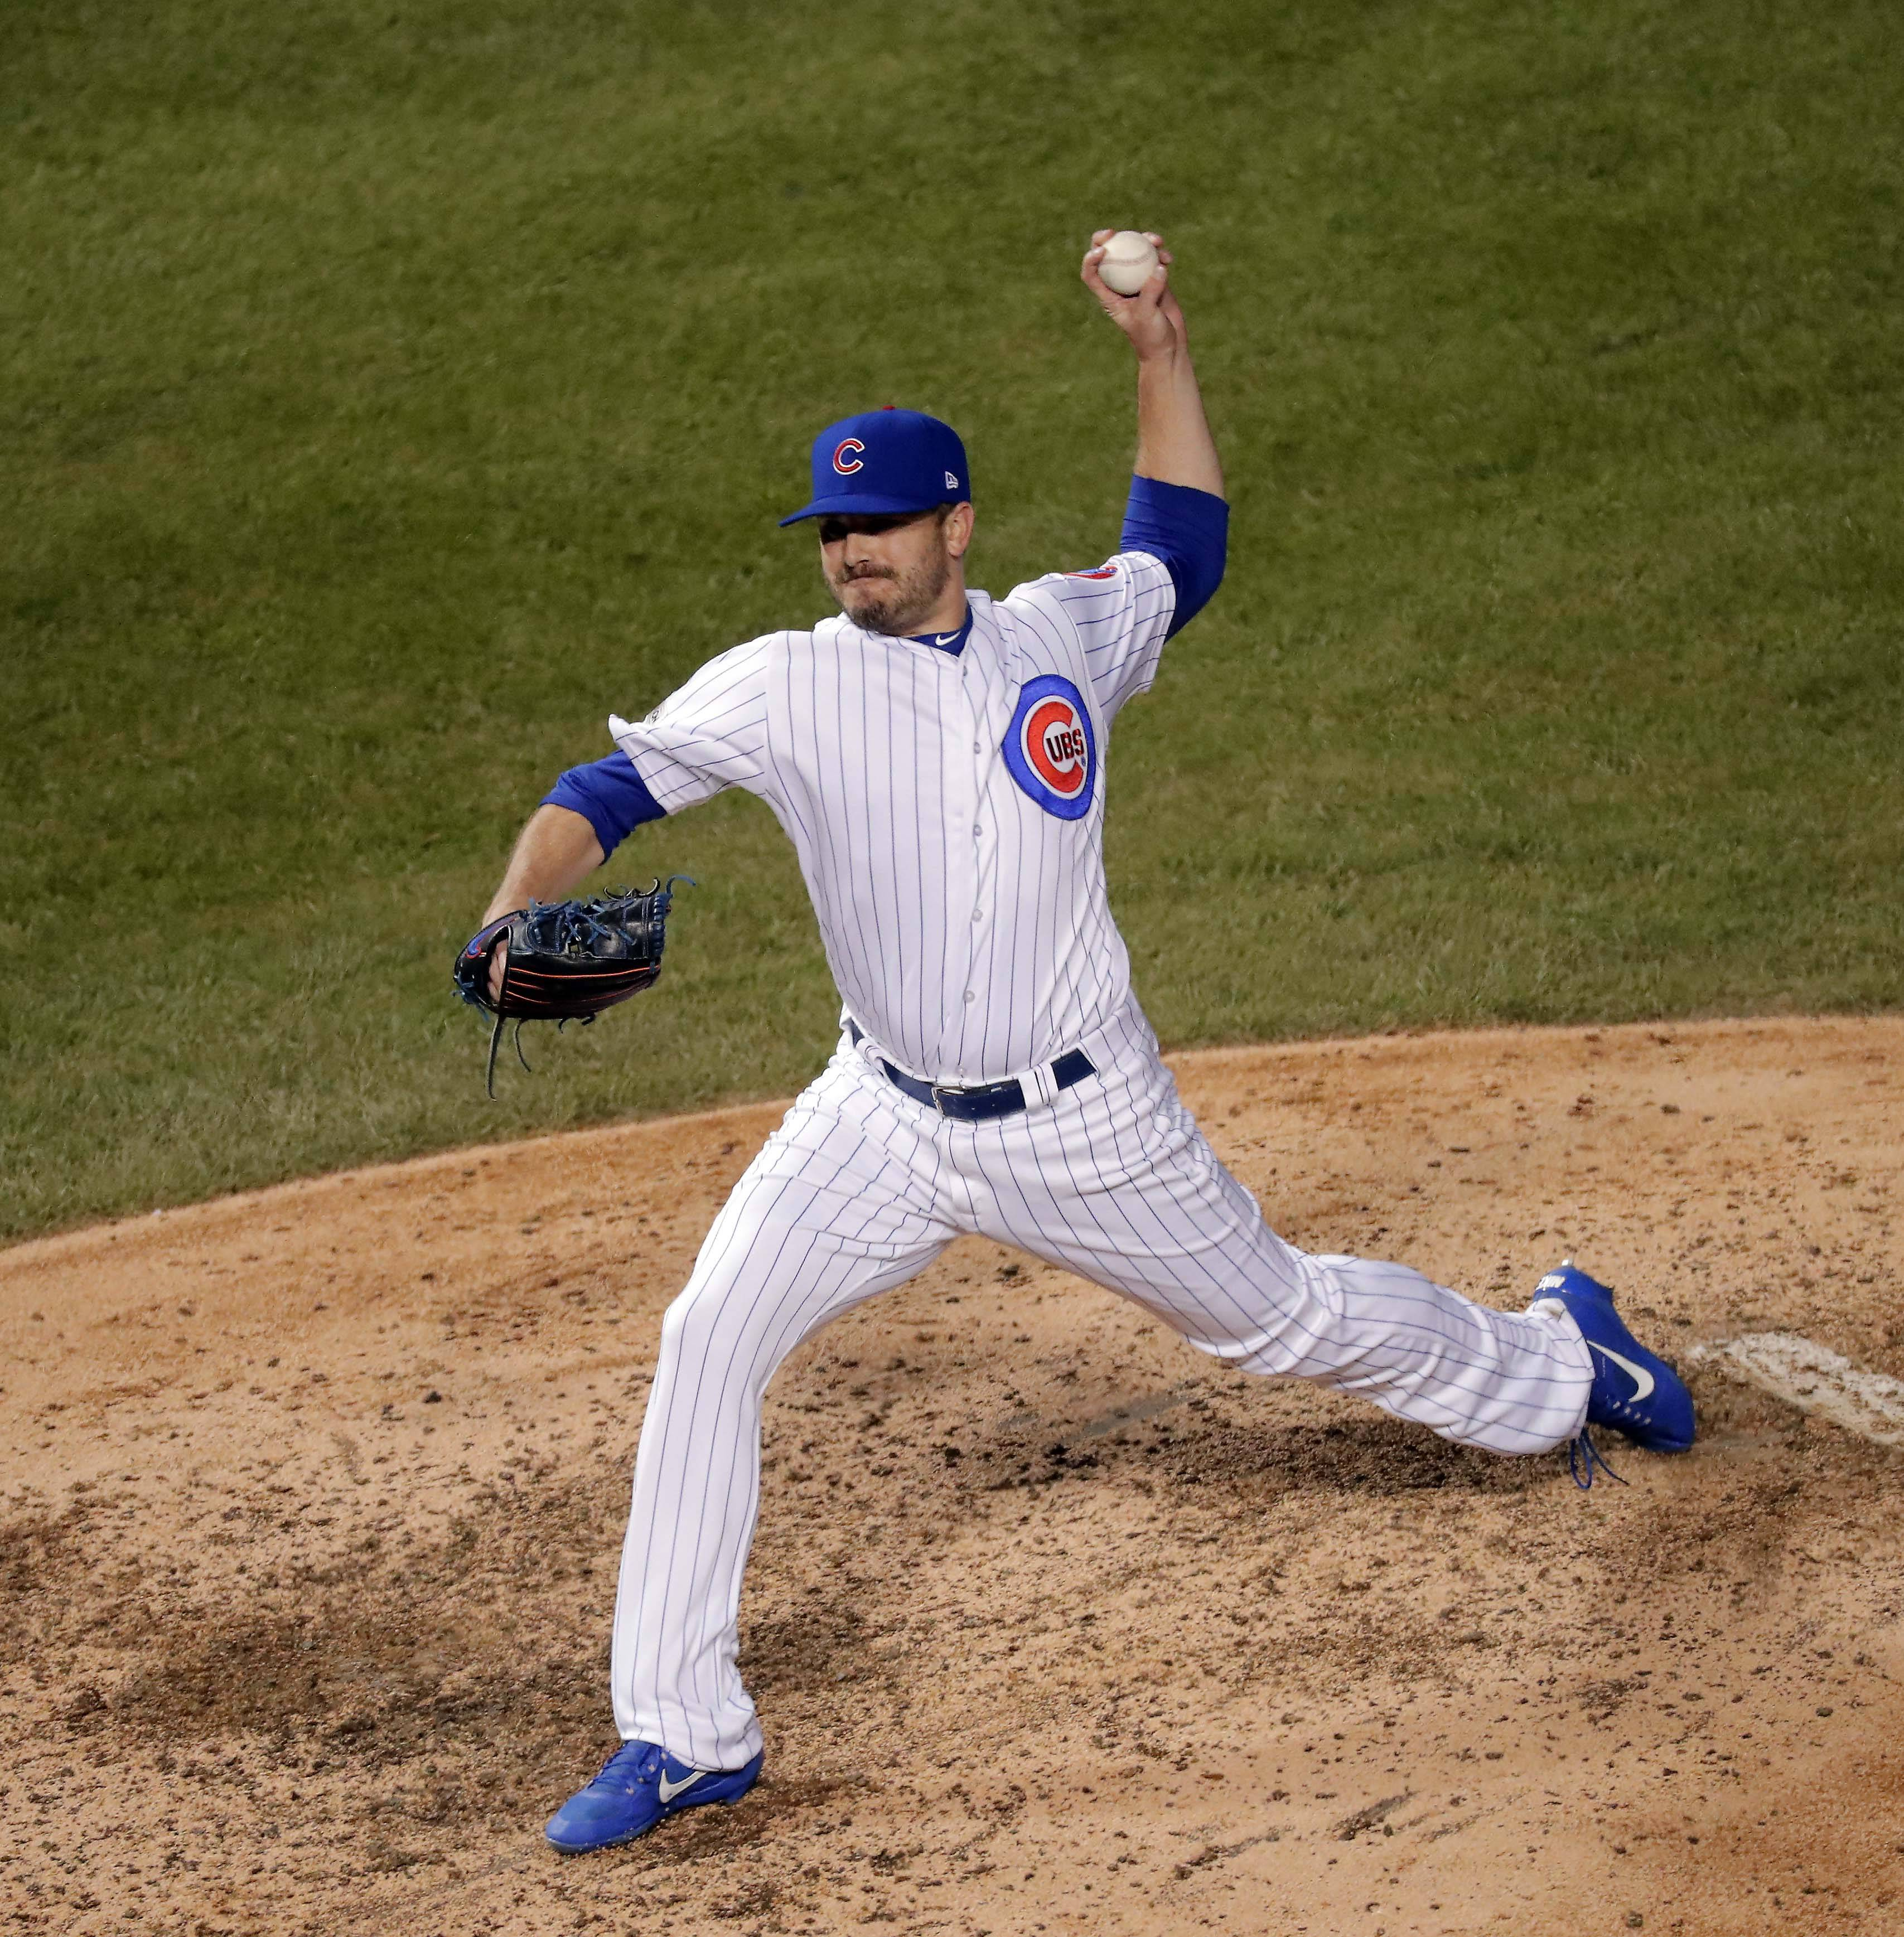 Relief pitcher Brian Duensing has agreed to a new deal to return to the Chicago Cubs.